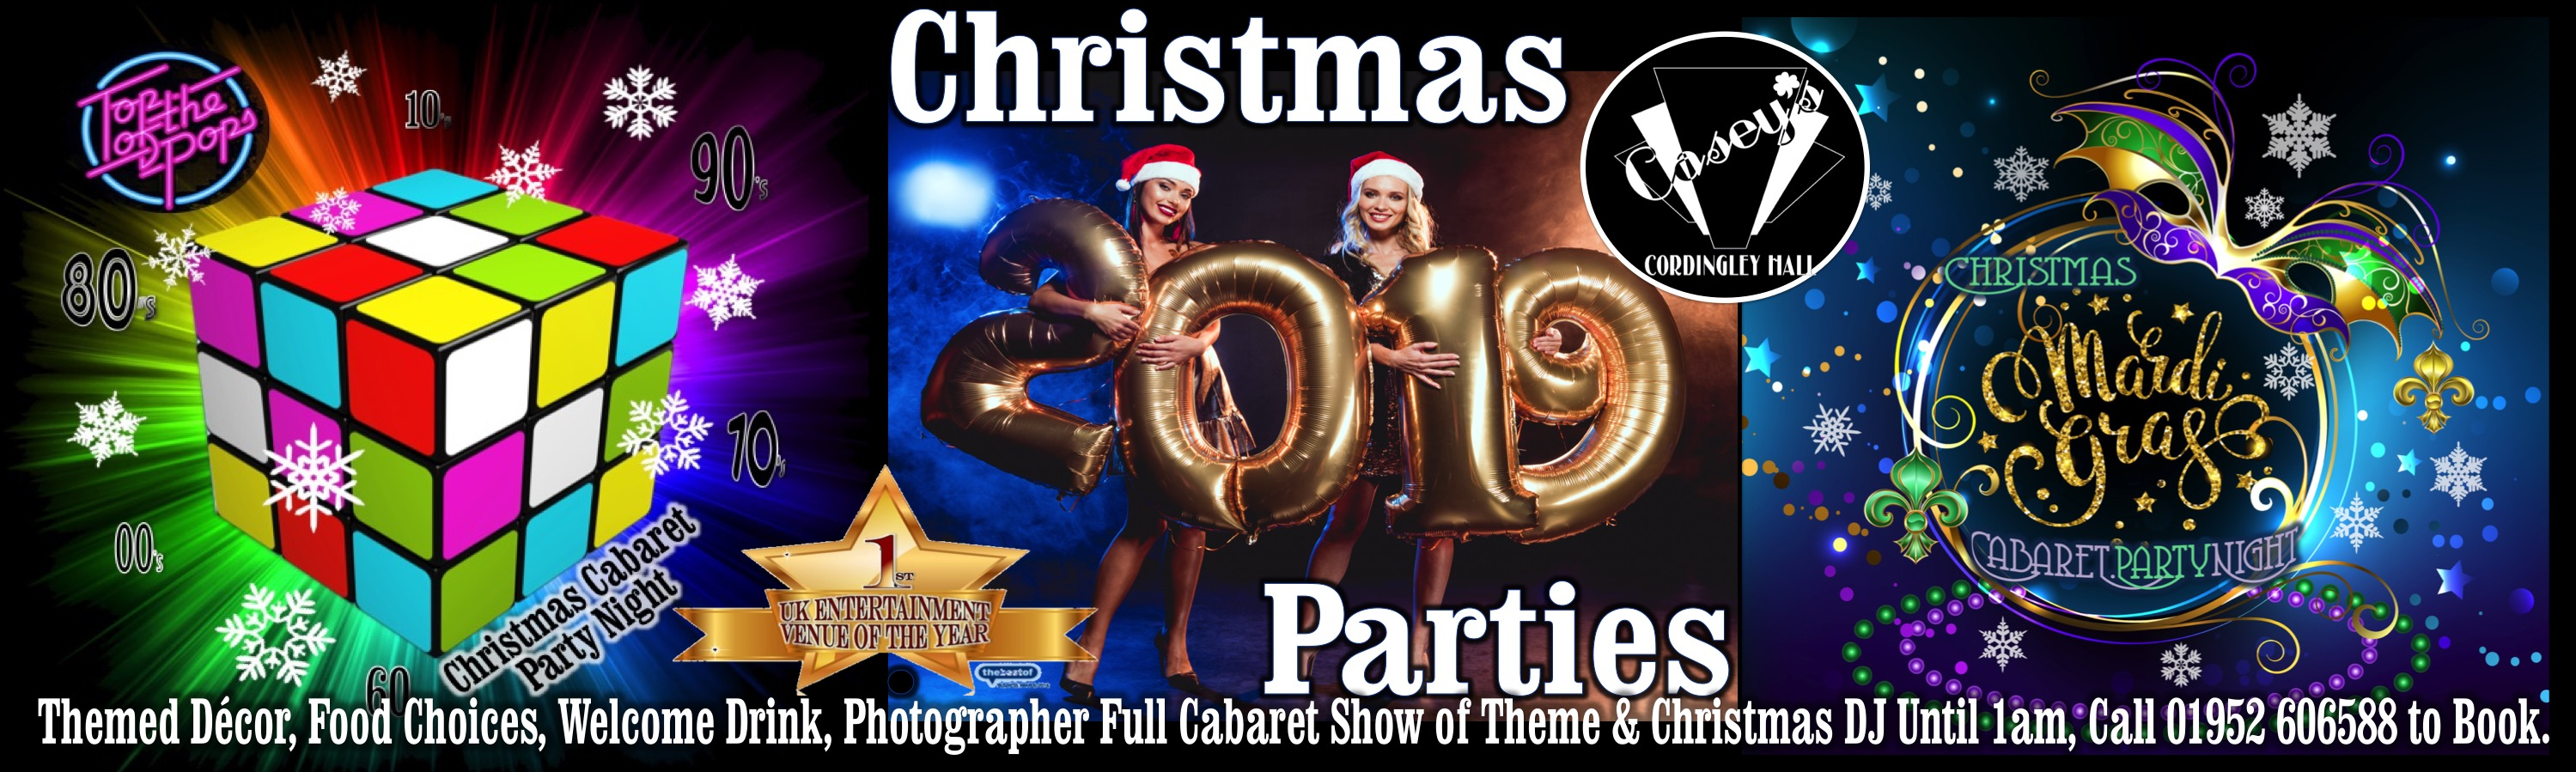 Philly Pops Christmas 2020 Dress Code For Philly Pops Christmas | Dhukmk.2020newyear.site